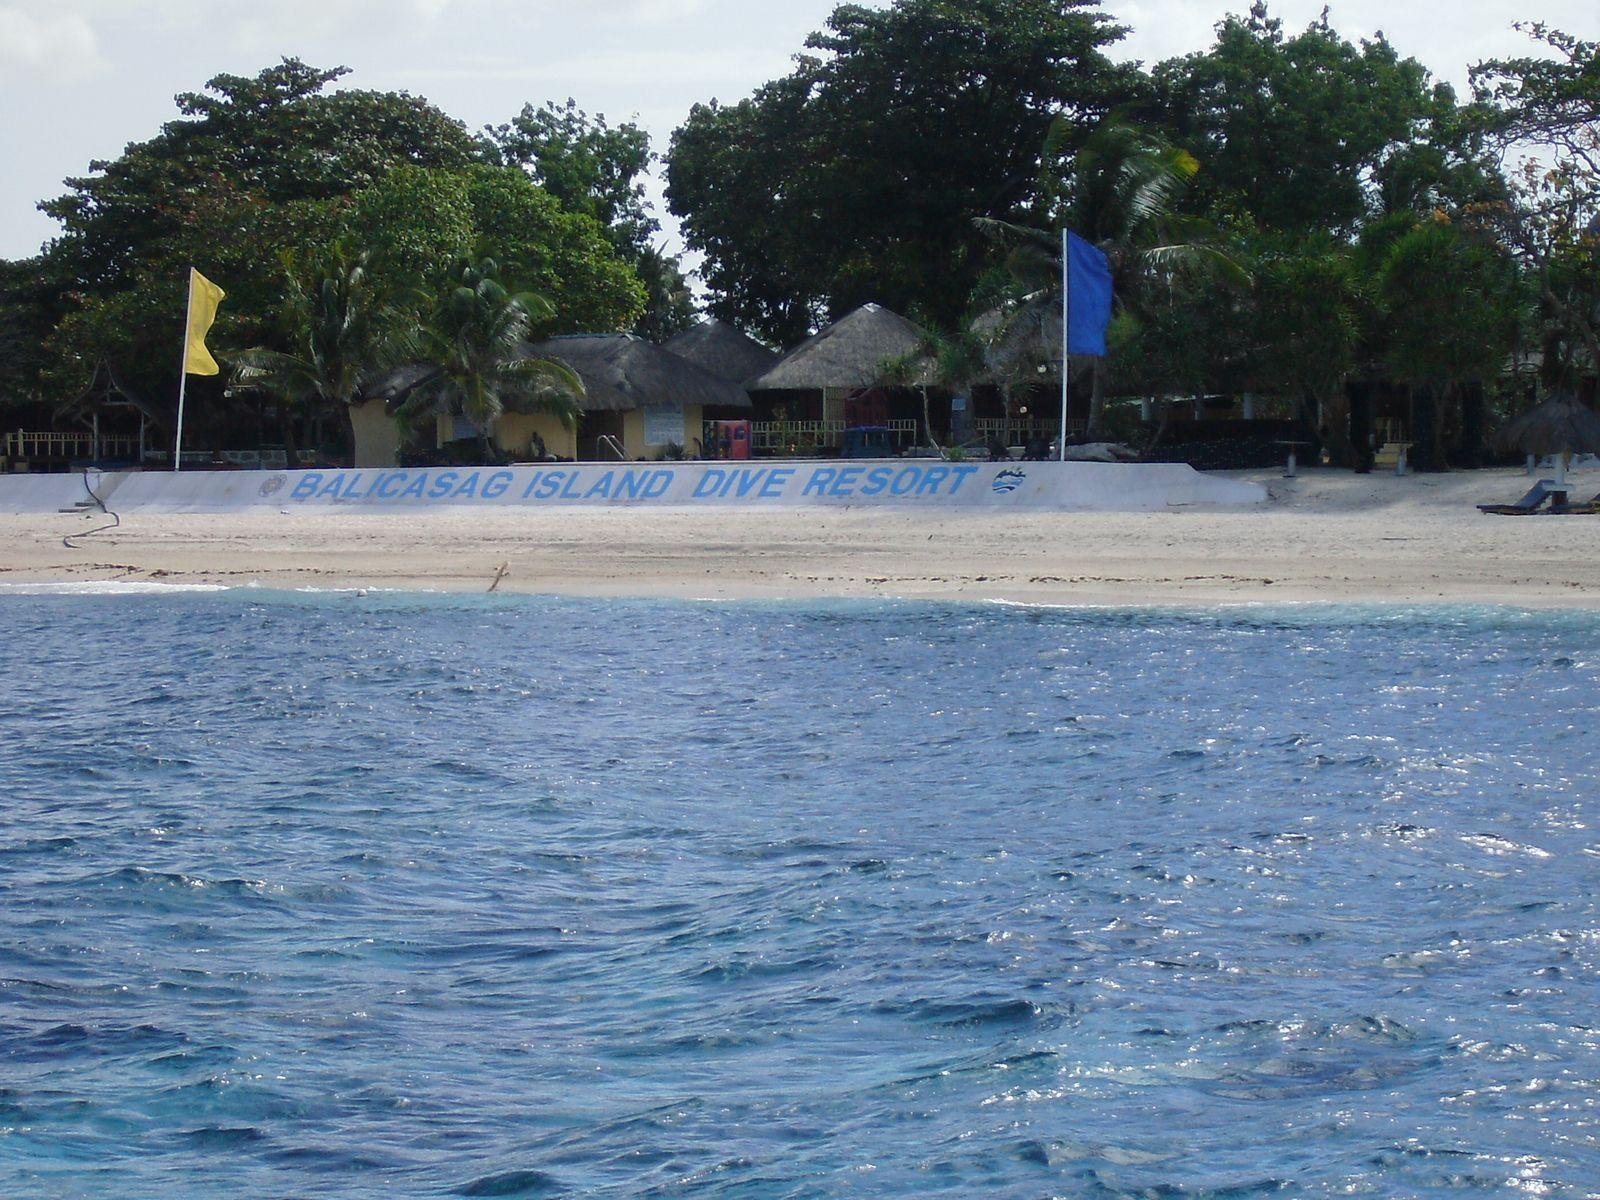 Balicasag Island Dive Resort Бохол